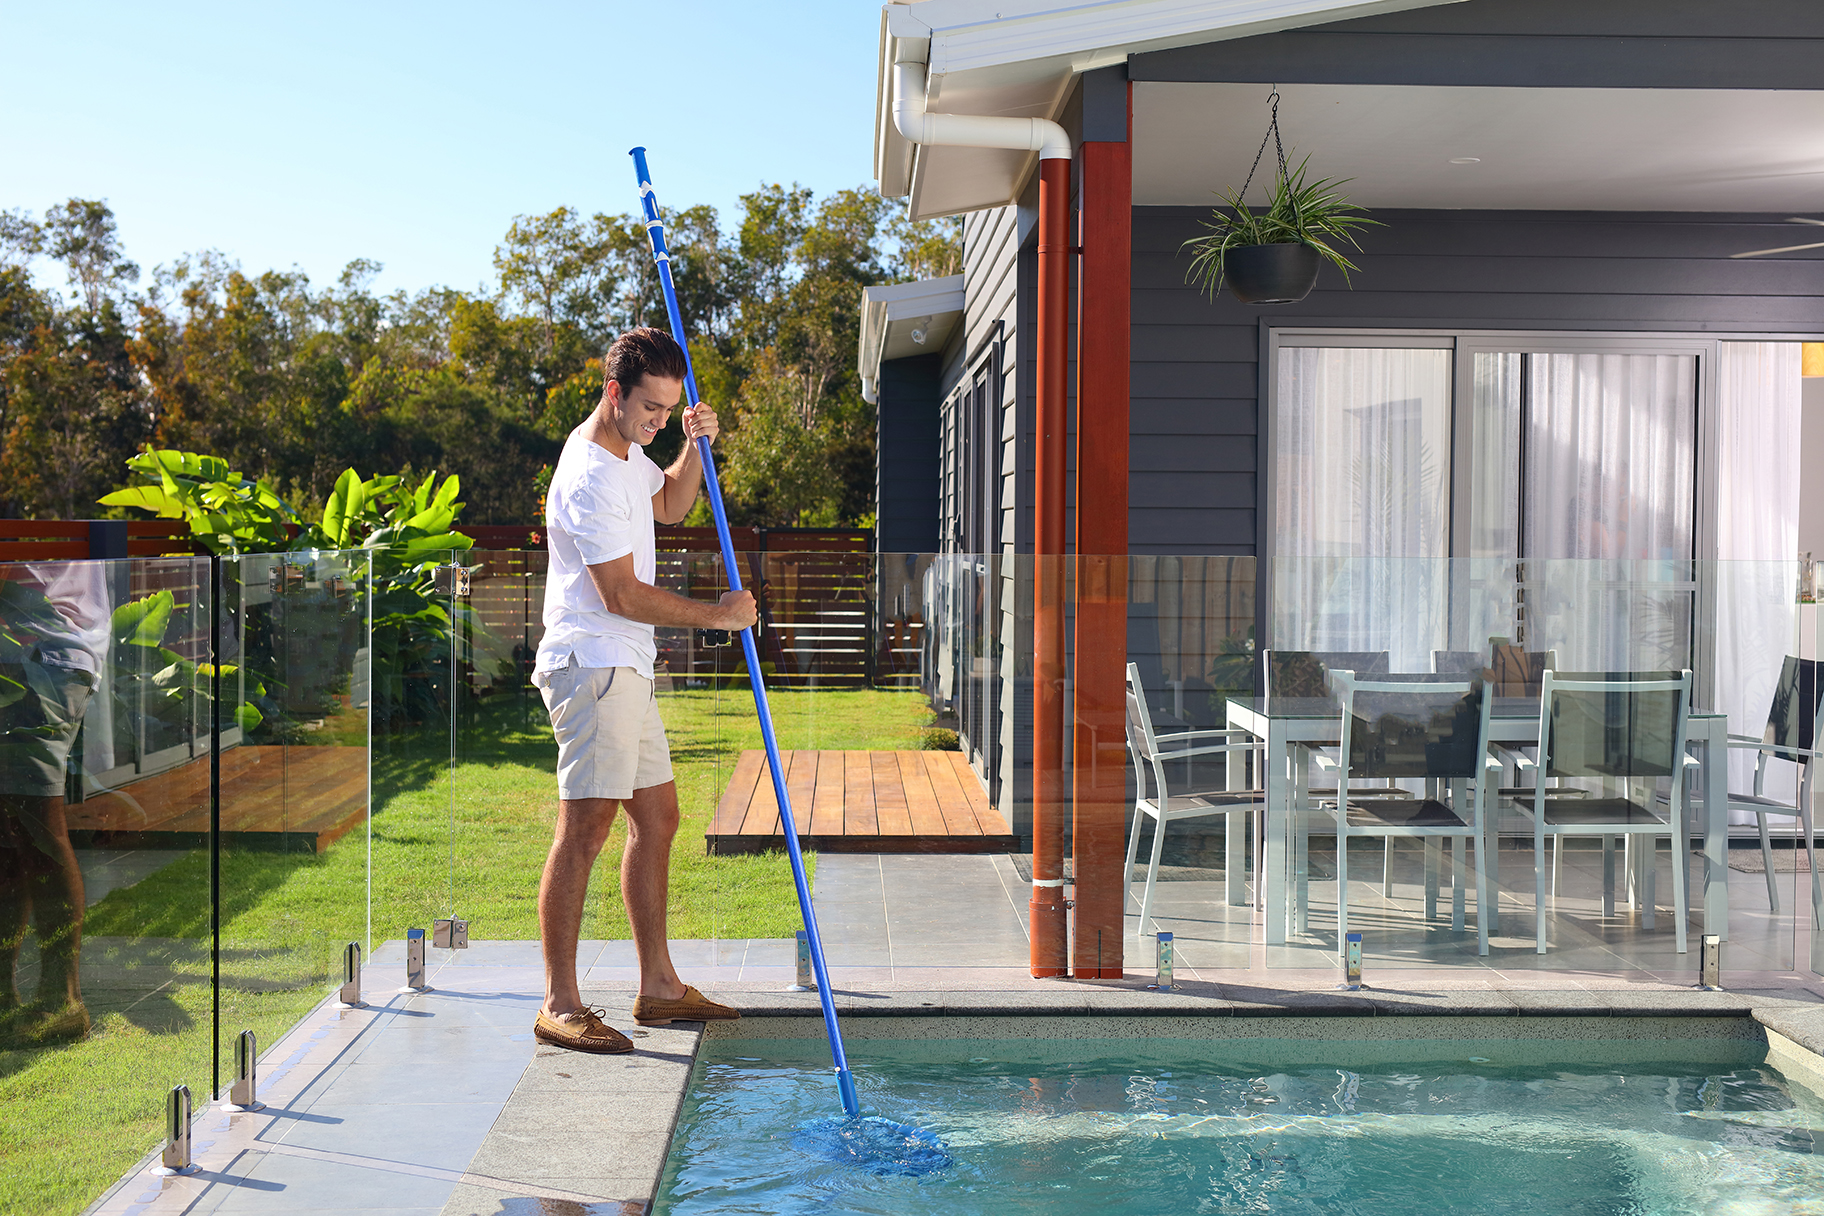 Man cleaning pool in residential backyard